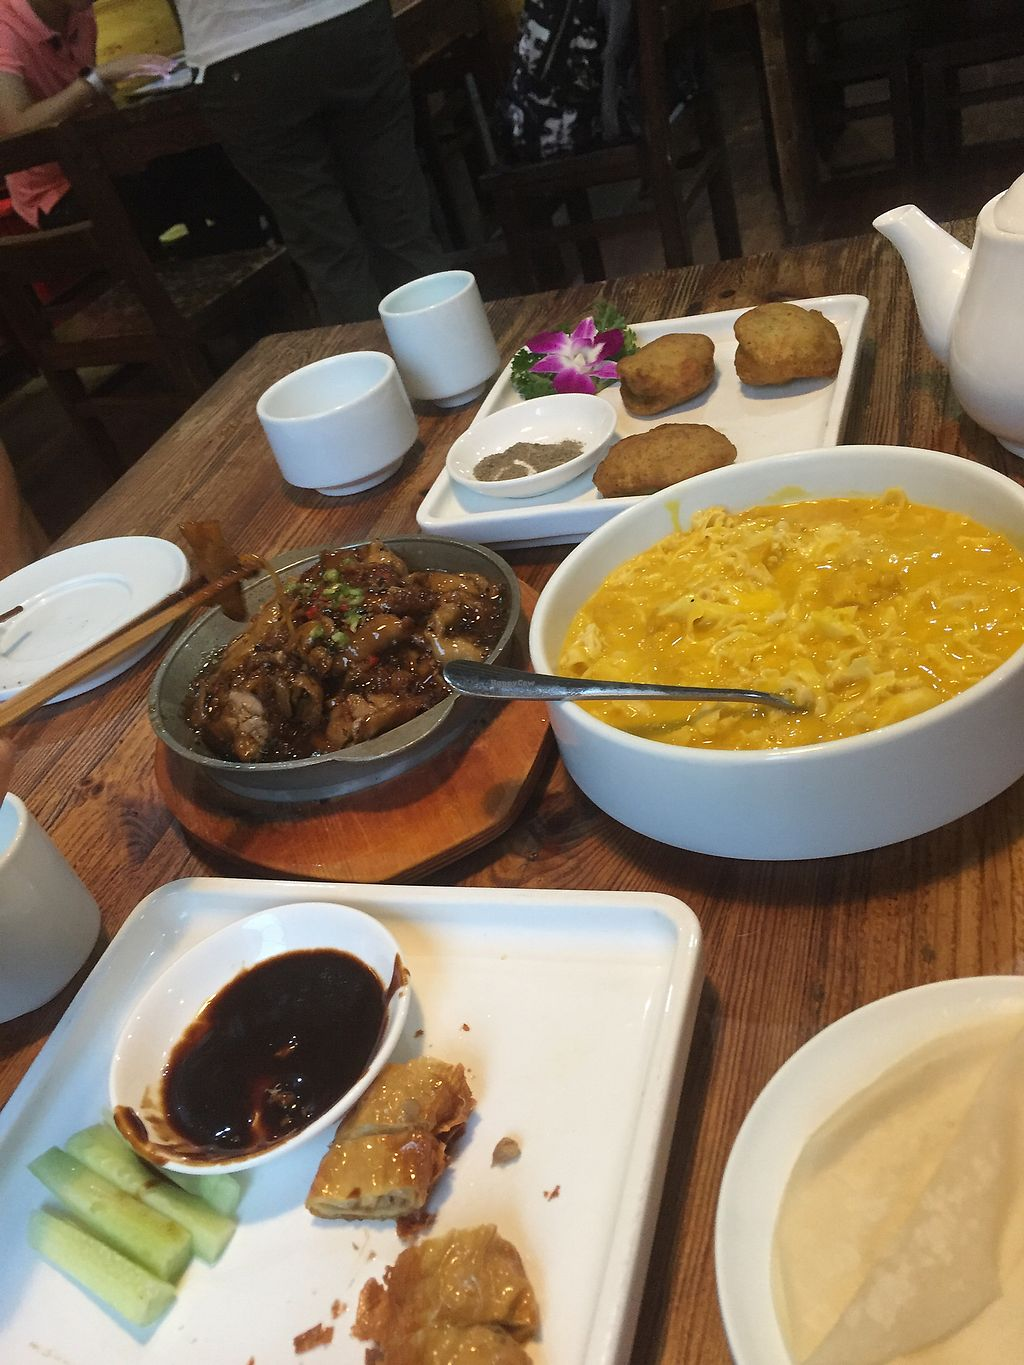 """Photo of Ji Xiang Cao - Lucky Zen & Veg Restaurant  by <a href=""""/members/profile/H2OAddict"""">H2OAddict</a> <br/>A feast <br/> August 29, 2017  - <a href='/contact/abuse/image/17209/298579'>Report</a>"""